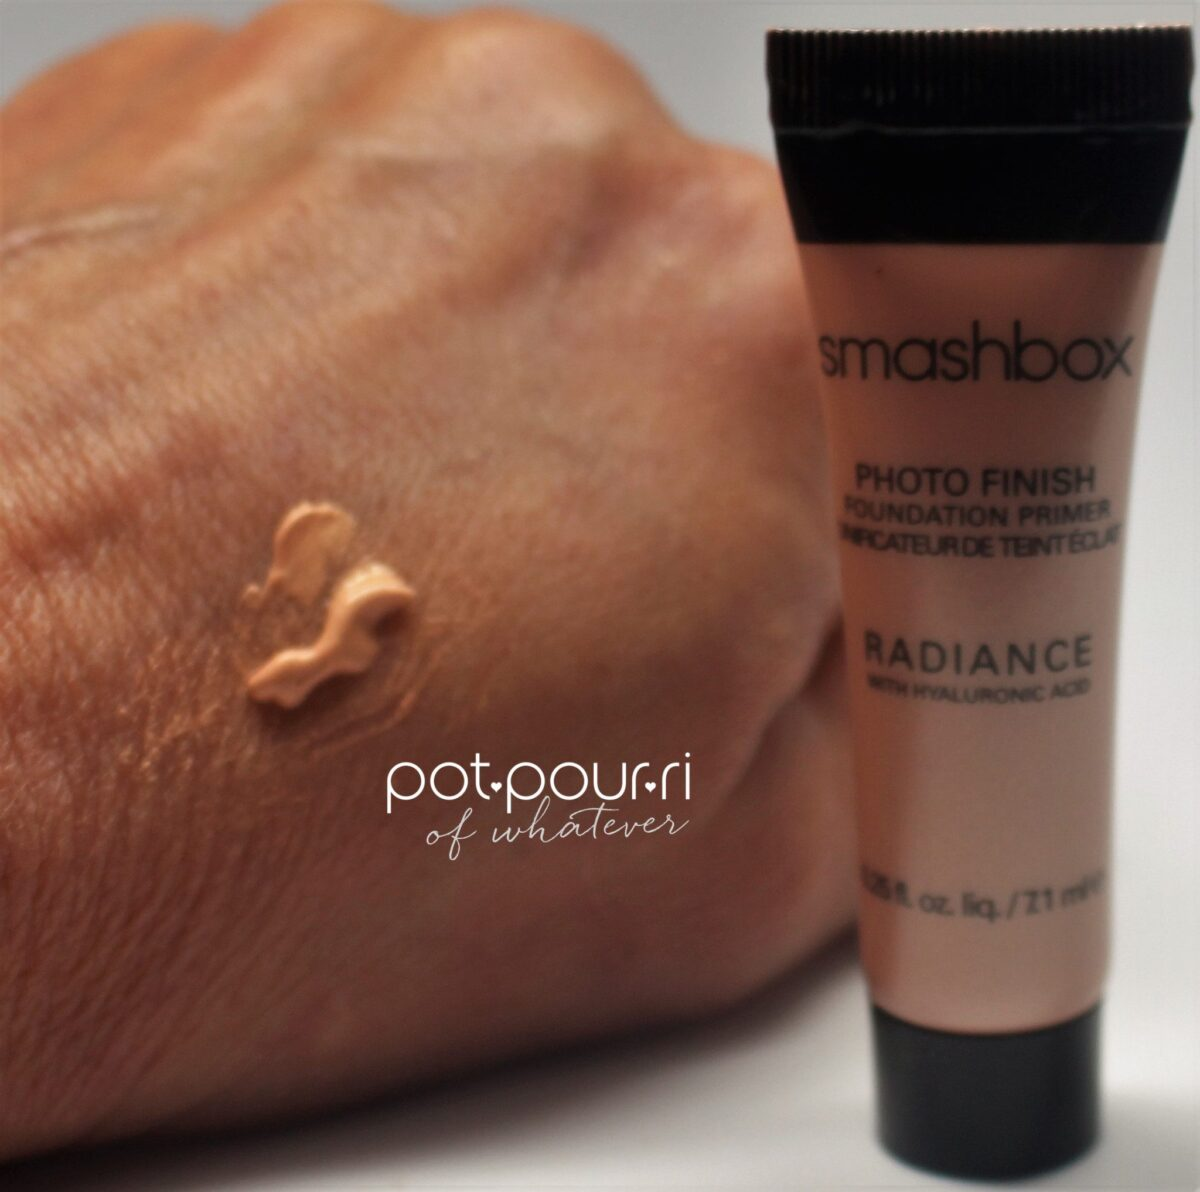 swatch of Smashbox Primer